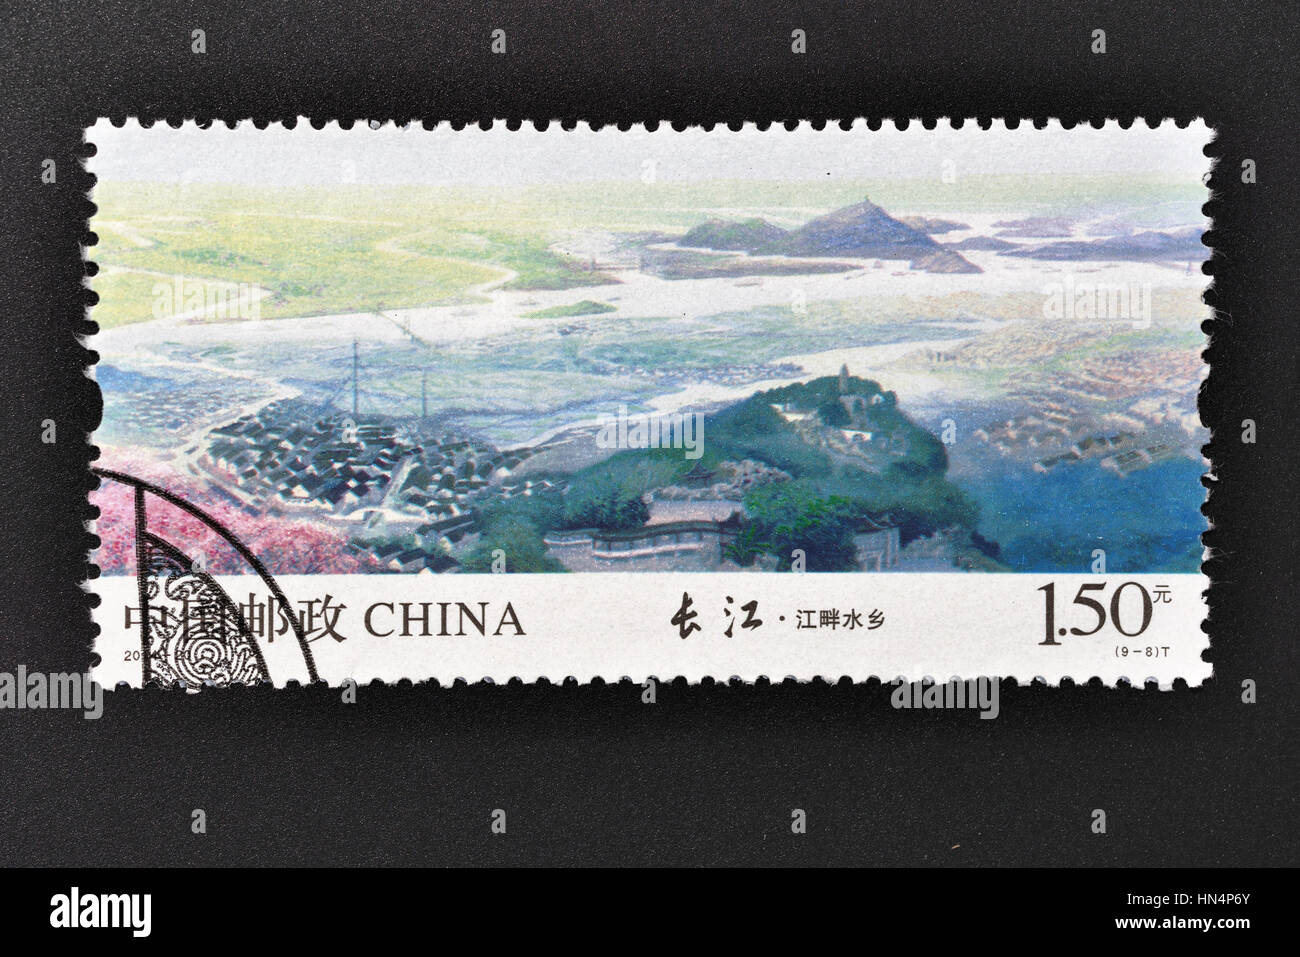 CHINA - CIRCA 2014: A stamp printed in P.R.China shows 2014-20 Chinese Yangtze River (Yangzijiang Changjiang),circa - Stock Image